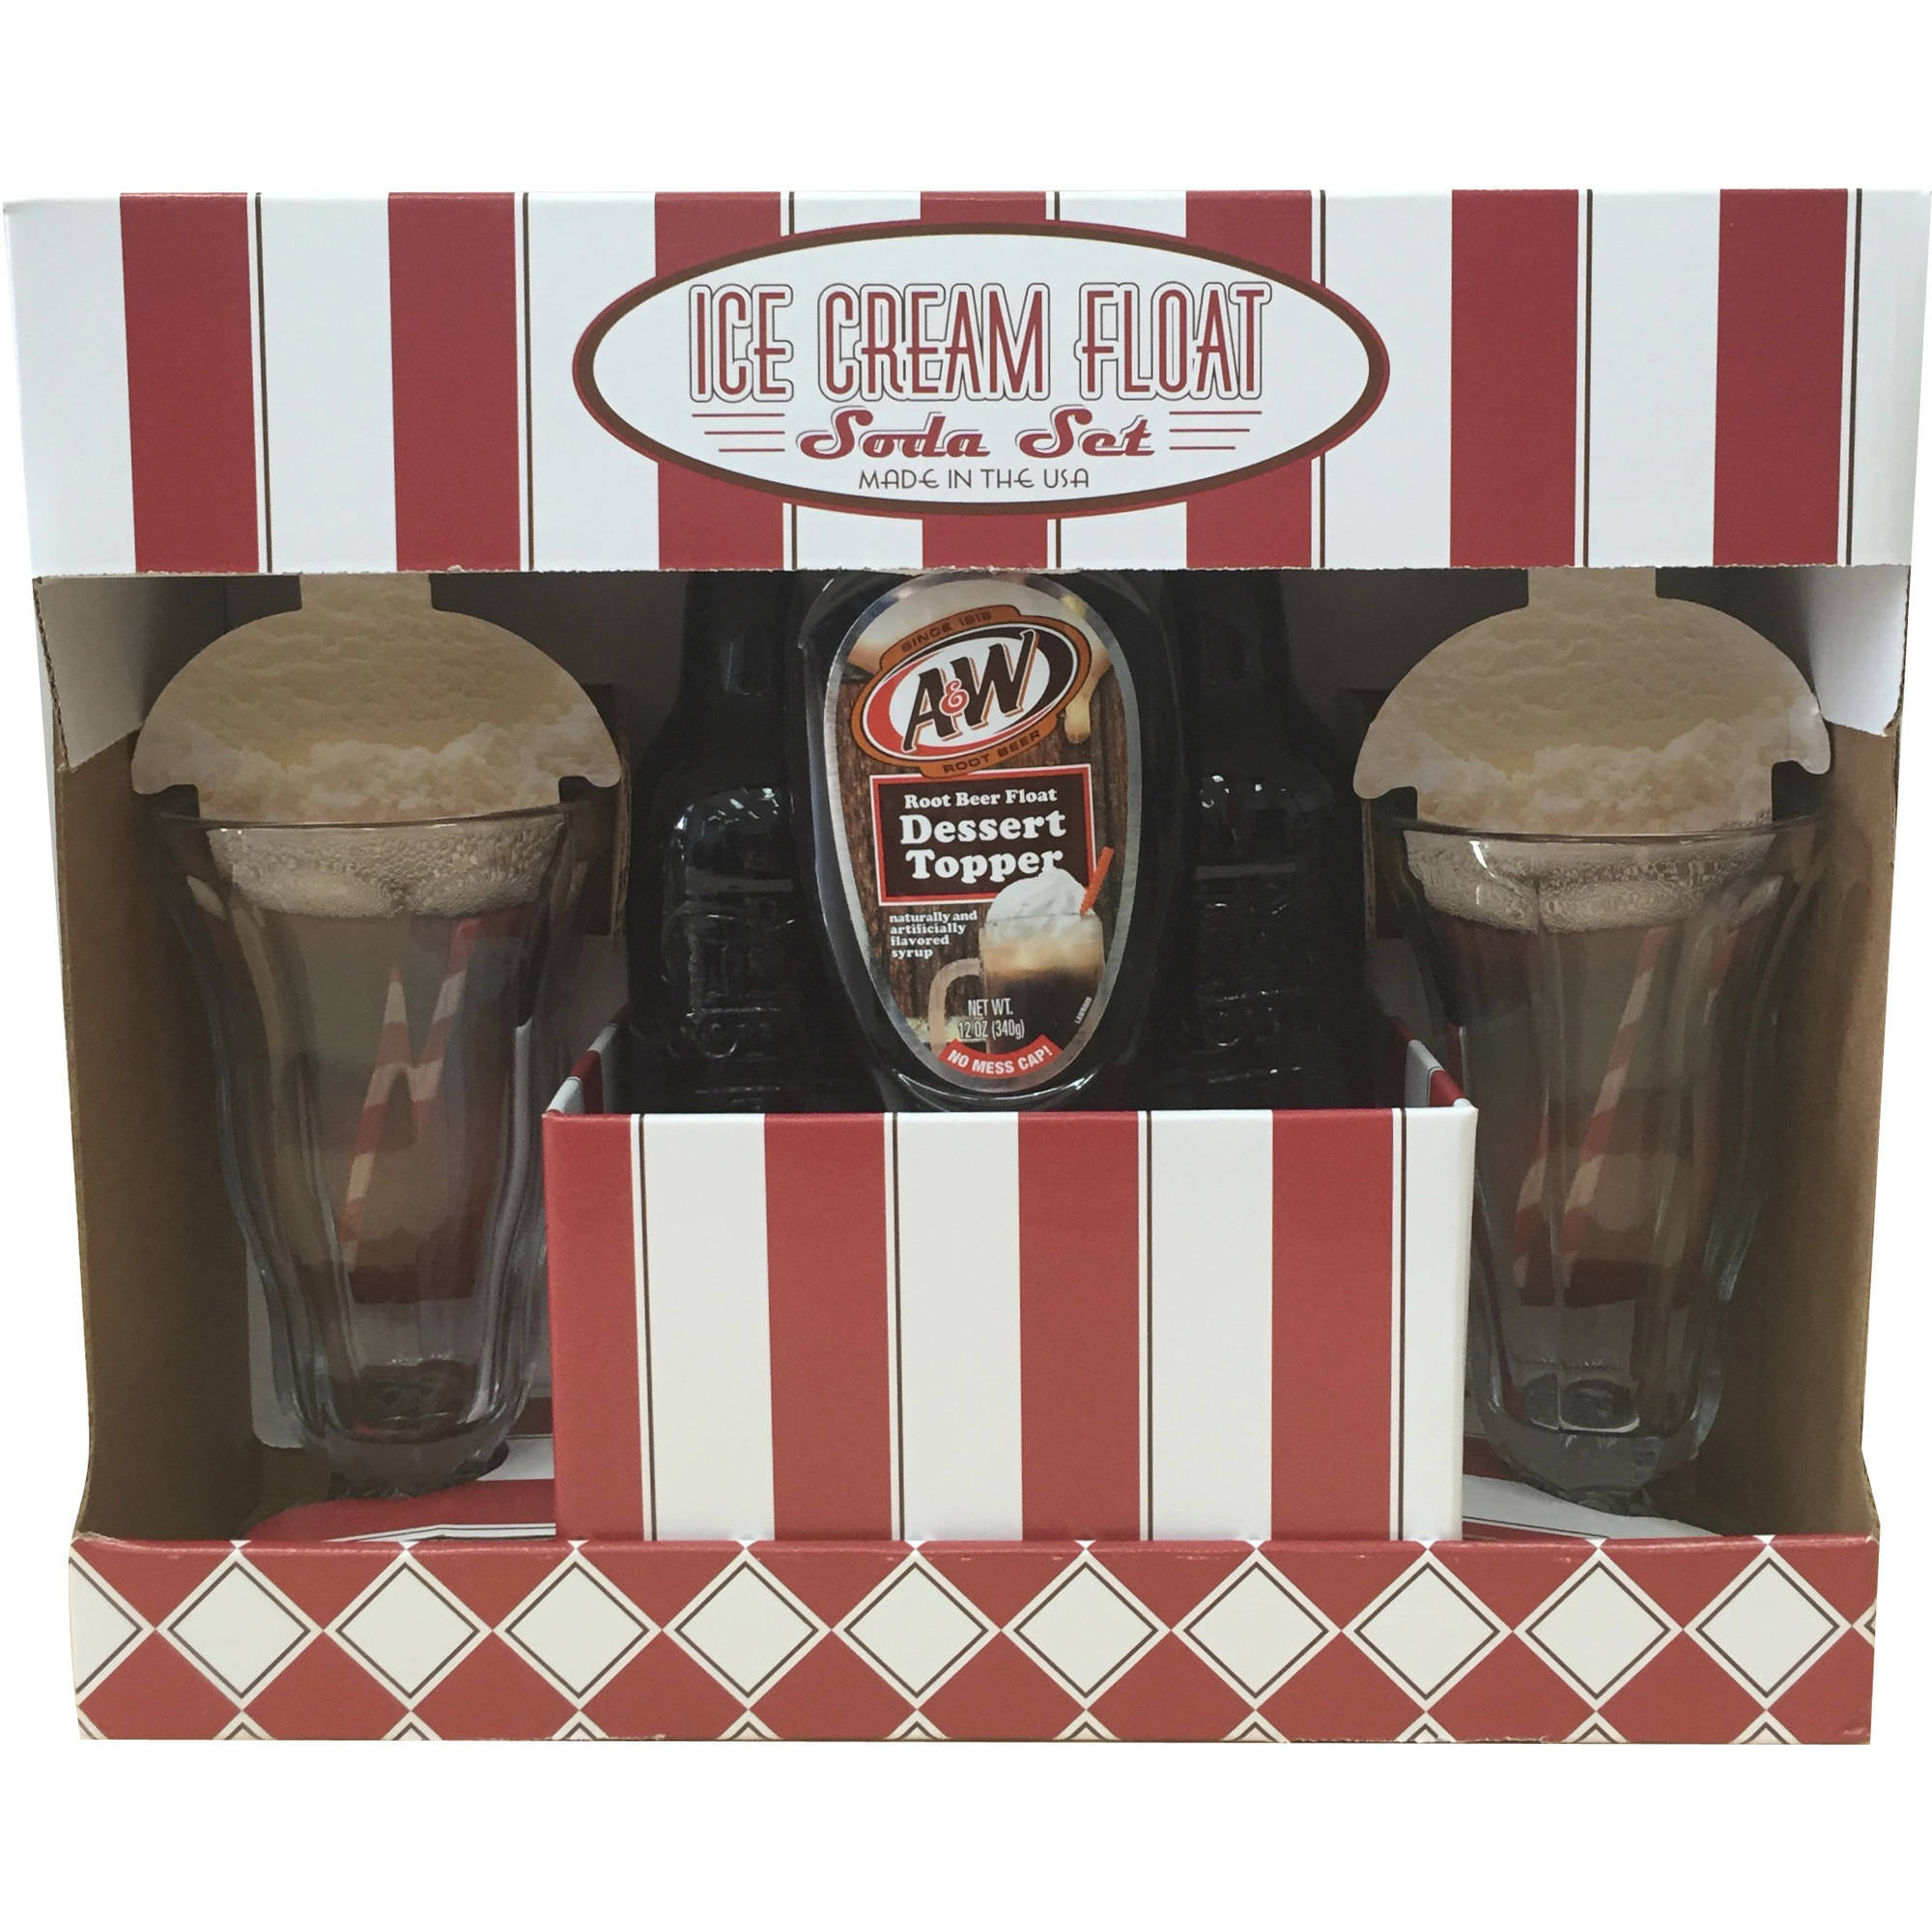 A&W Root Beer Ice Cream Float Soda Set, 4 pc